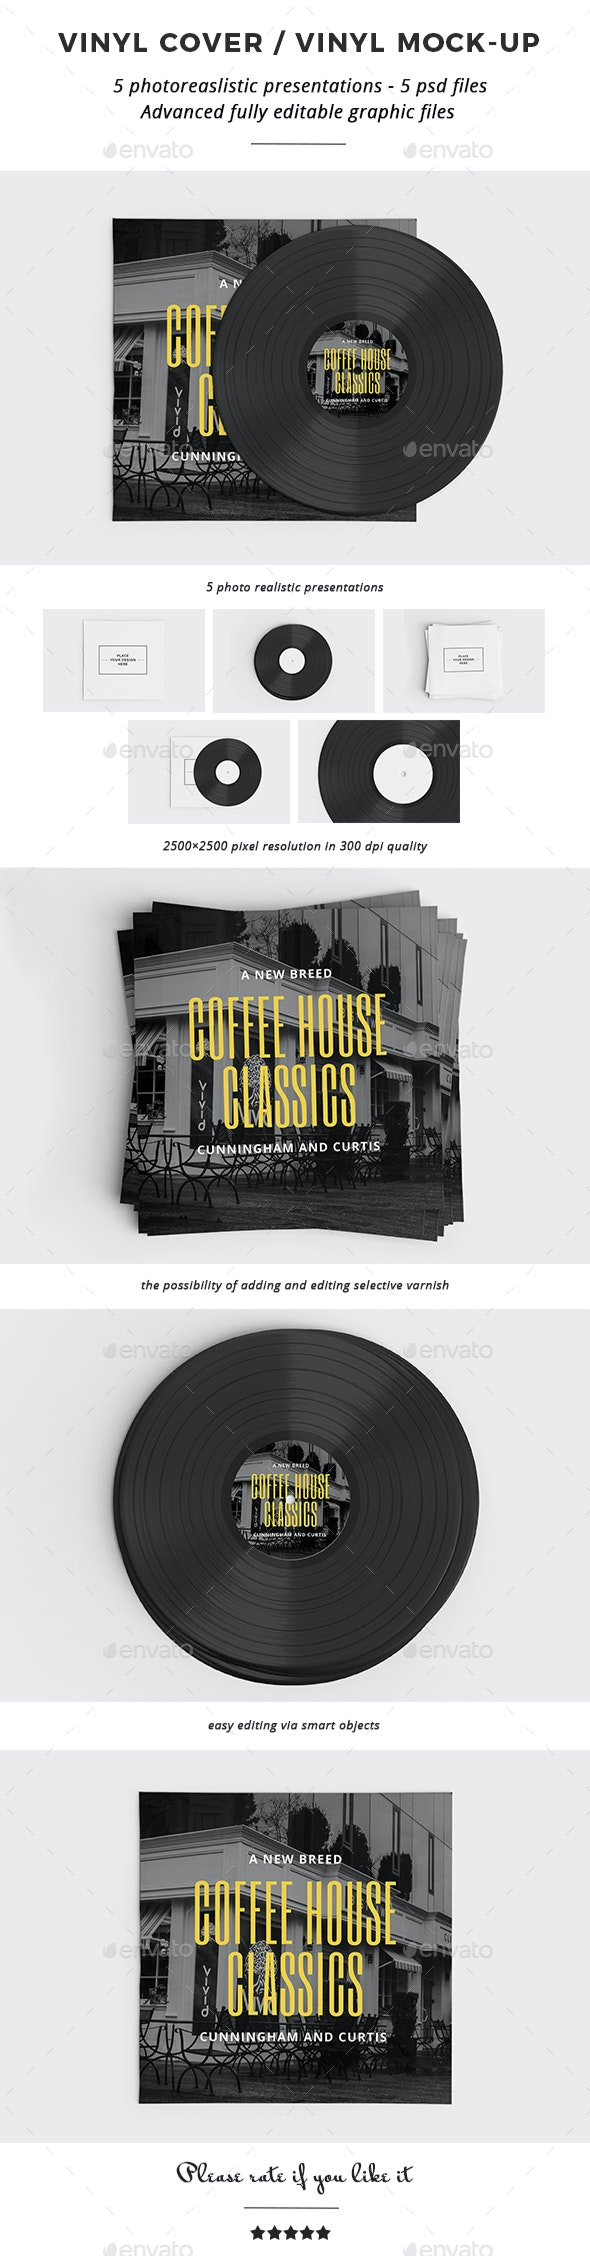 Vinyl Cover / Vinyl Mock-up - Discs Packaging